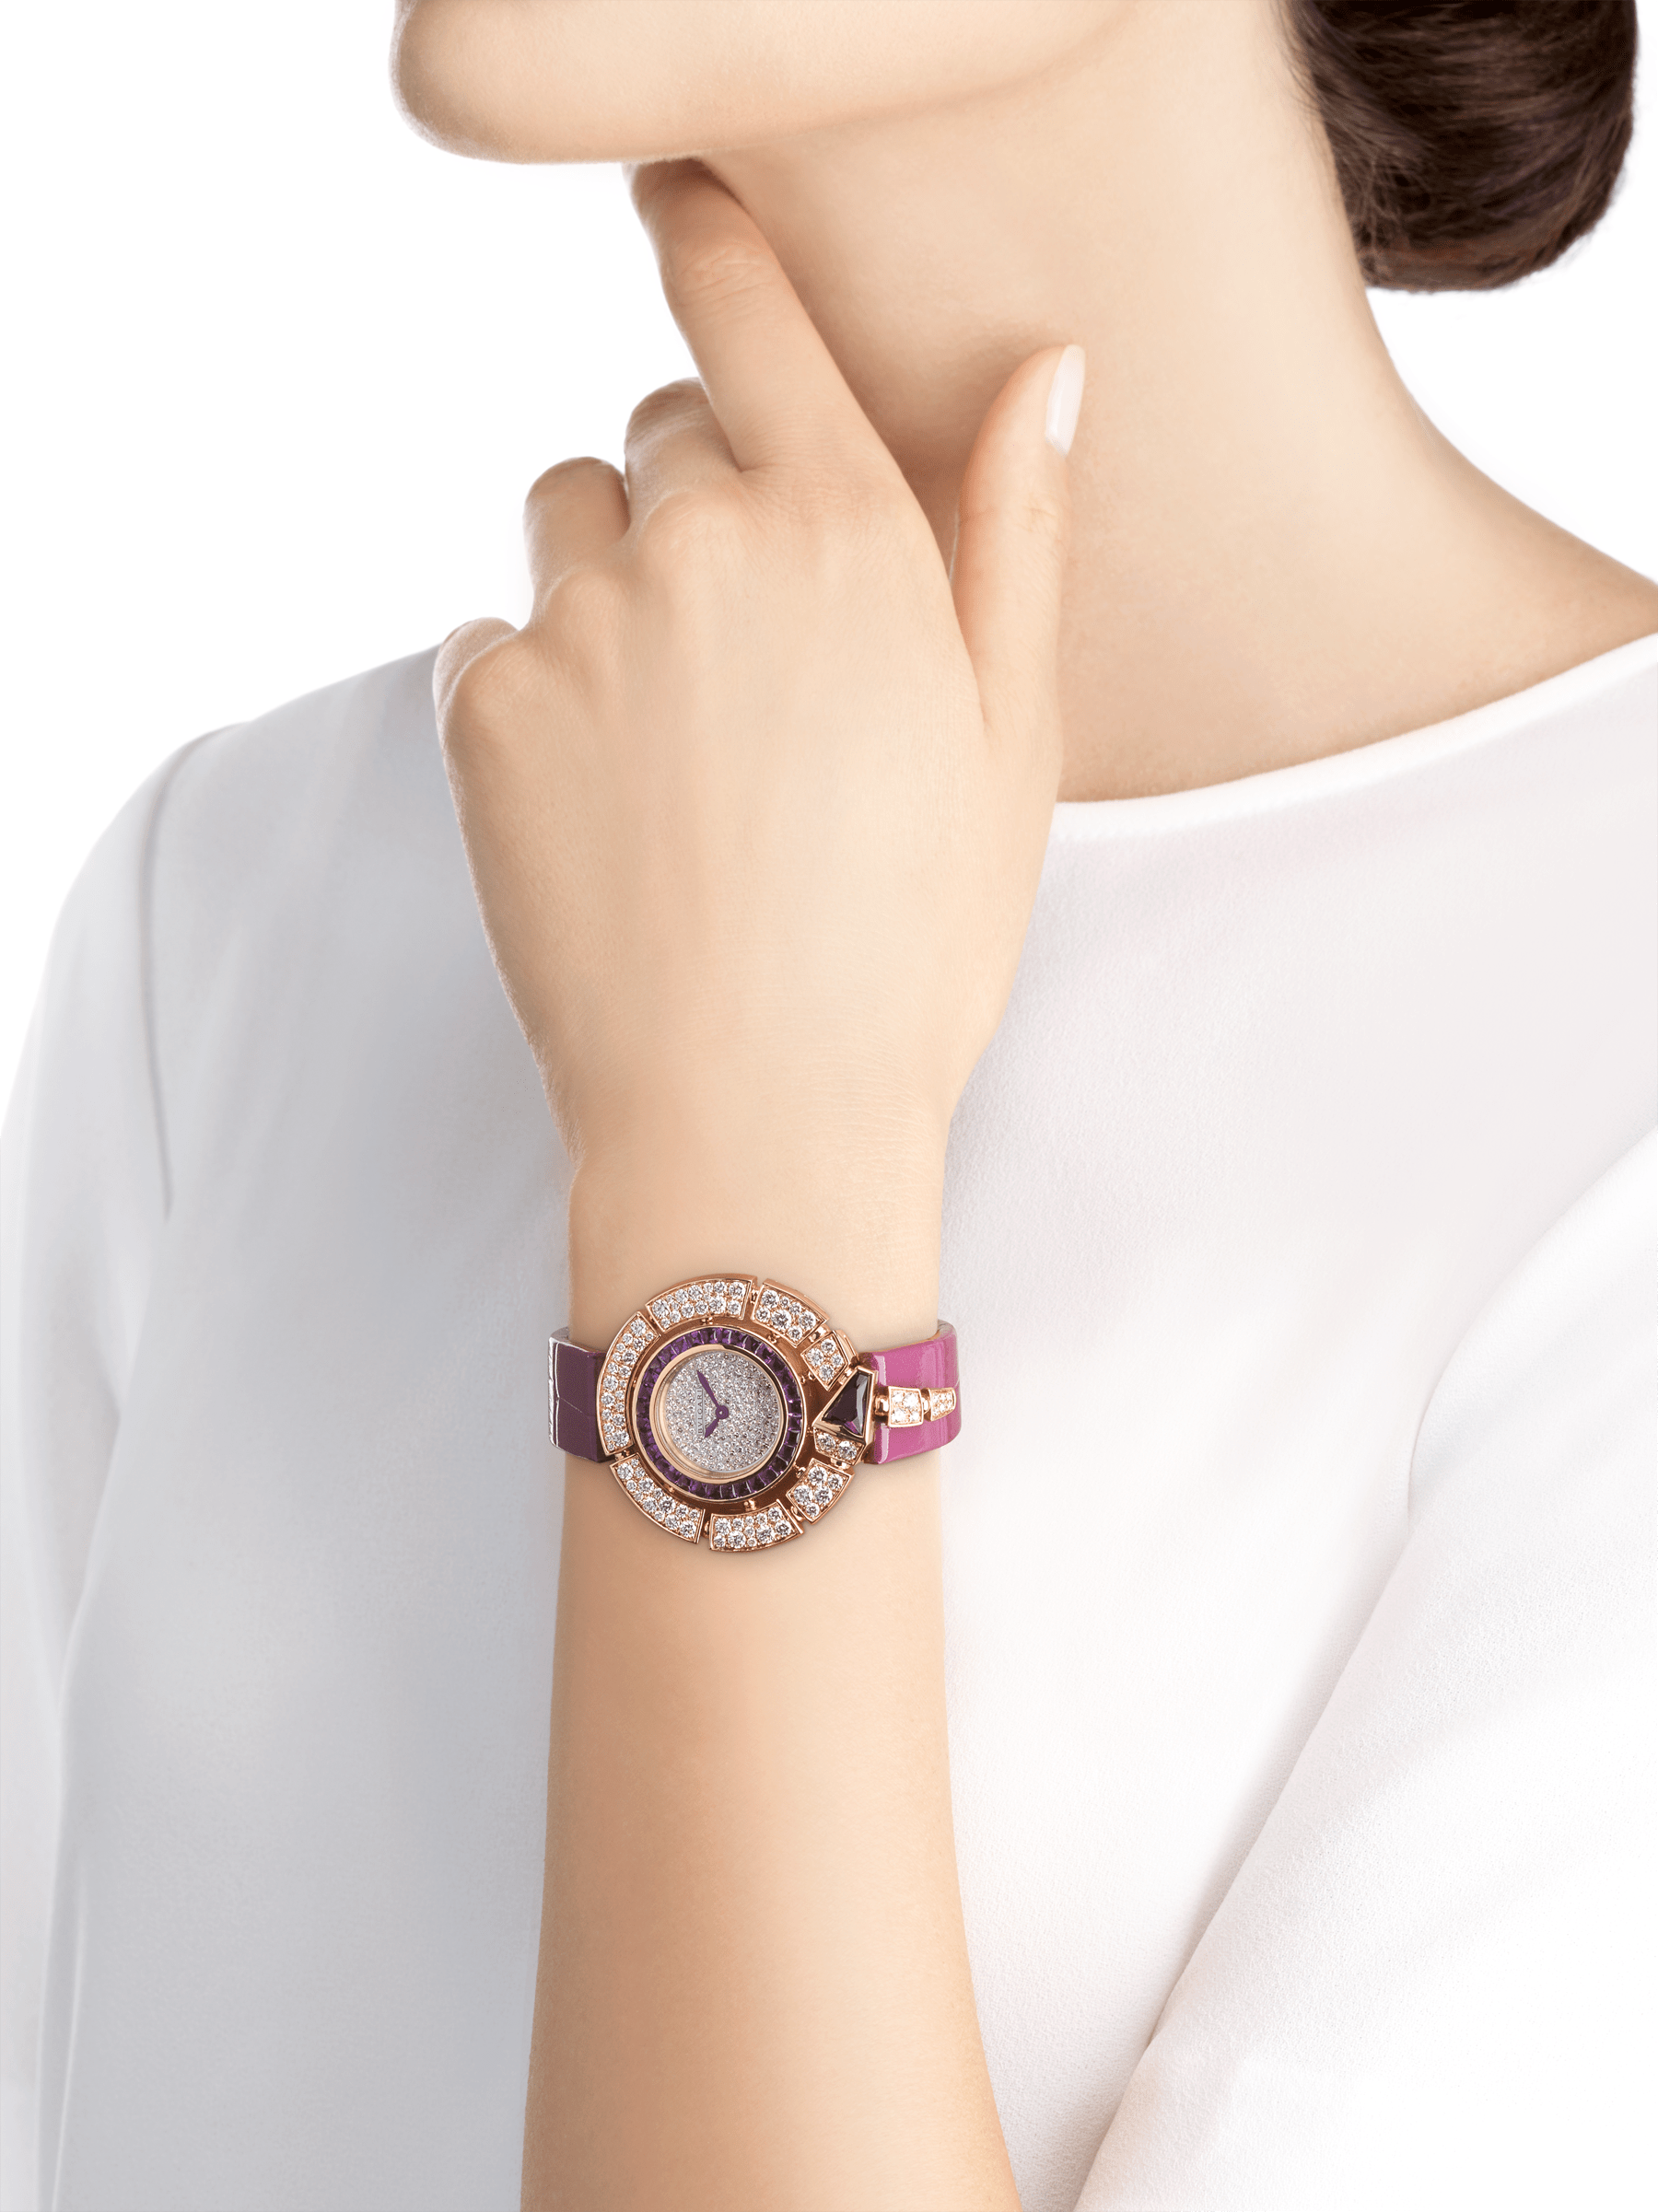 Serpenti Incantati watch with 18 kt rose gold case set with round brilliant-cut diamonds and a fancy-shaped amethyst, 18 kt rose gold bezel set with buff-cut amethysts, snow pavé dial and purple alligator bracelet 103125 image 4